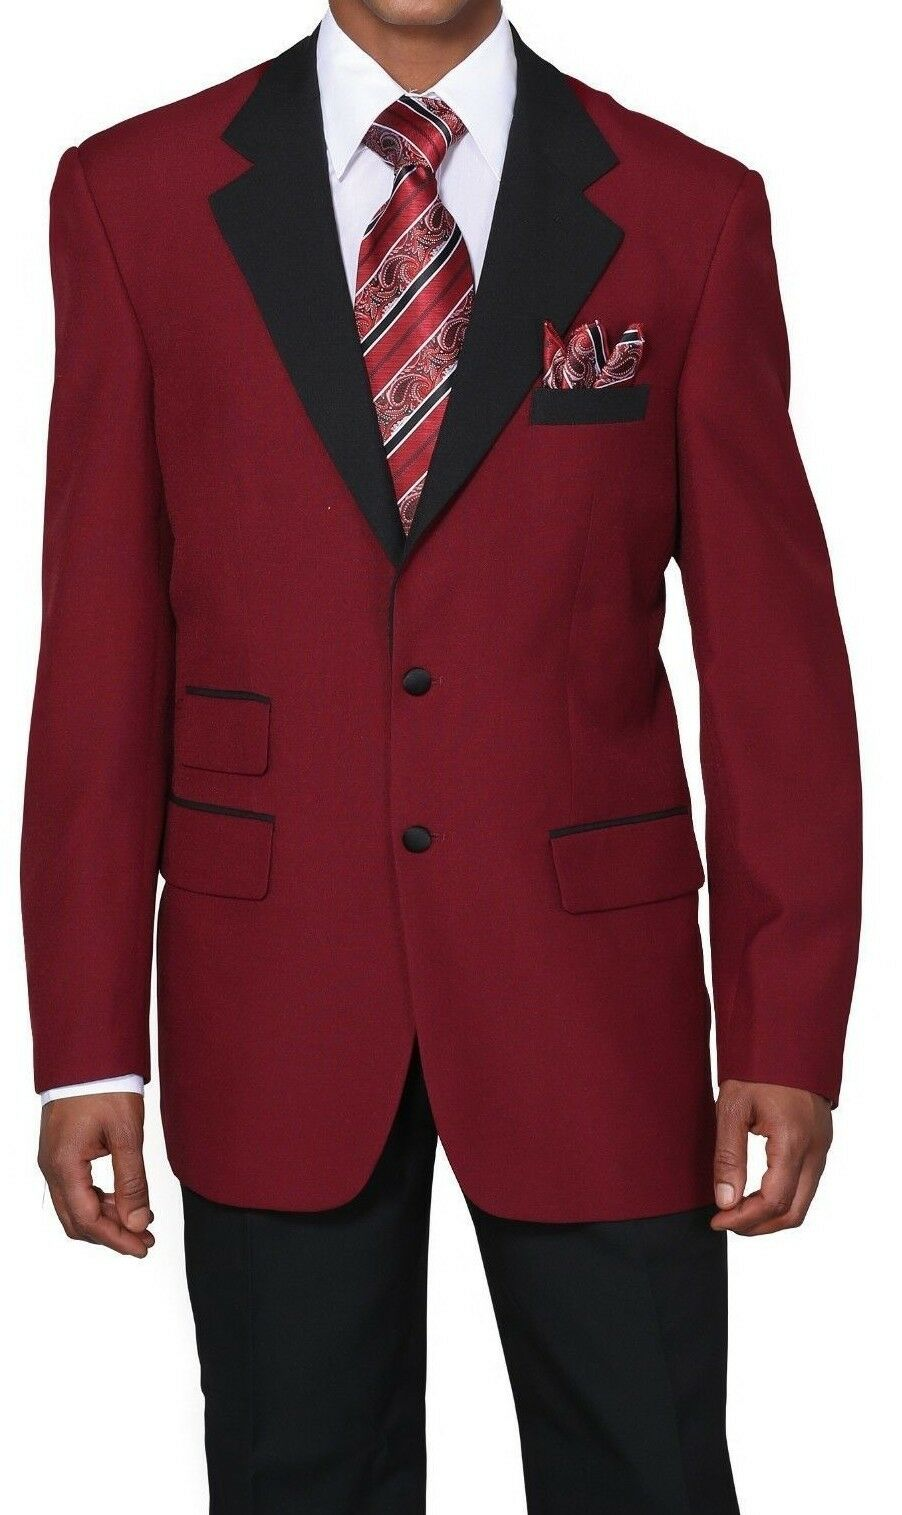 Find and save ideas about Burgundy suit on Pinterest. | See more ideas about Red suits for men, Maroon suit and Maroon suit mens. Weddings. Burgundy suit; Burgundy suit. Red suits for men black suit with burgundy tie - Google Search See more. Find this Pin and more on Robin Sebastian by Robin Sebastian Saint. See more.